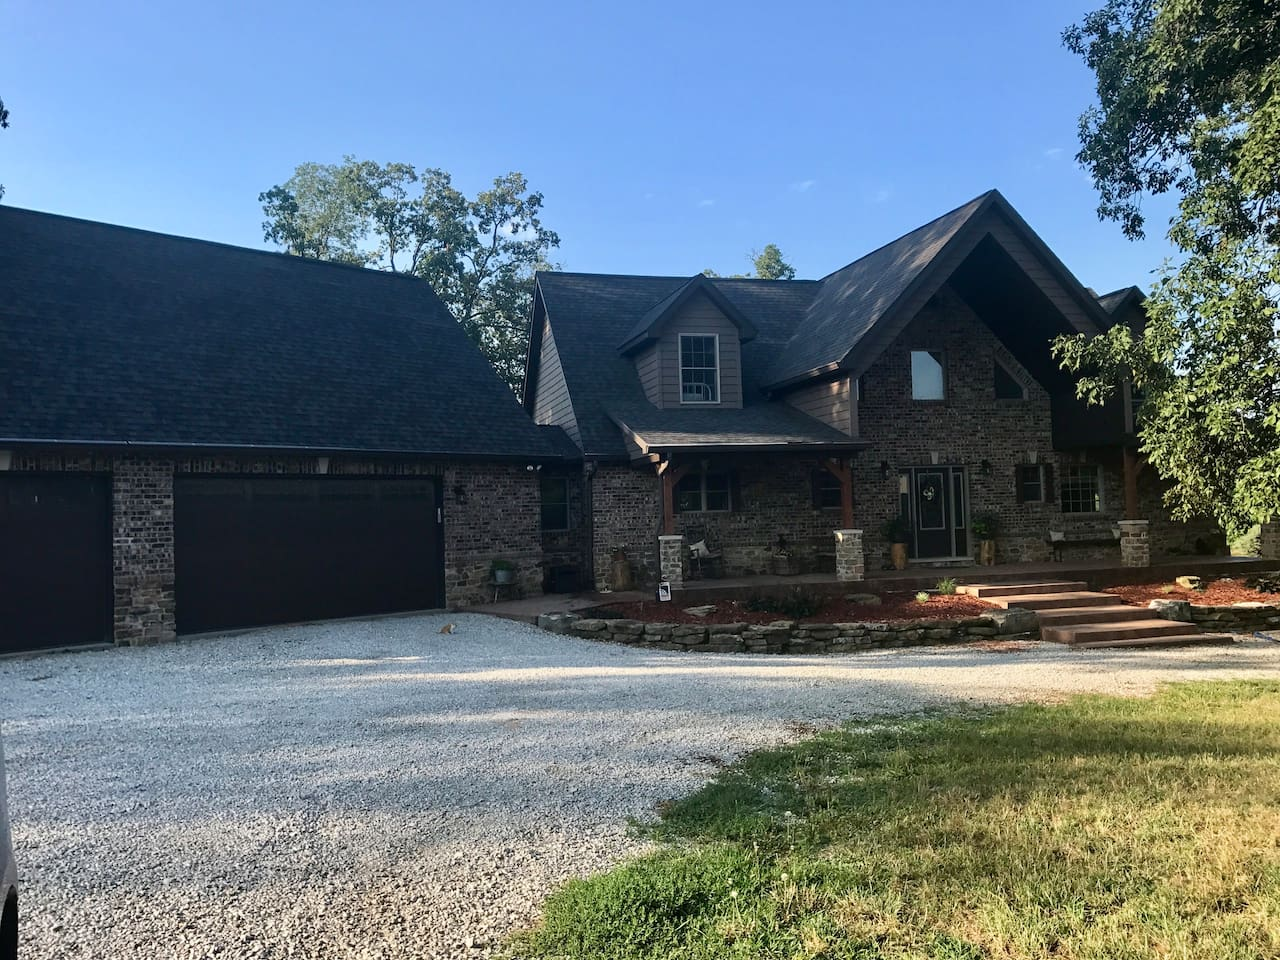 Country home on 10 acres with 5 acre lake.